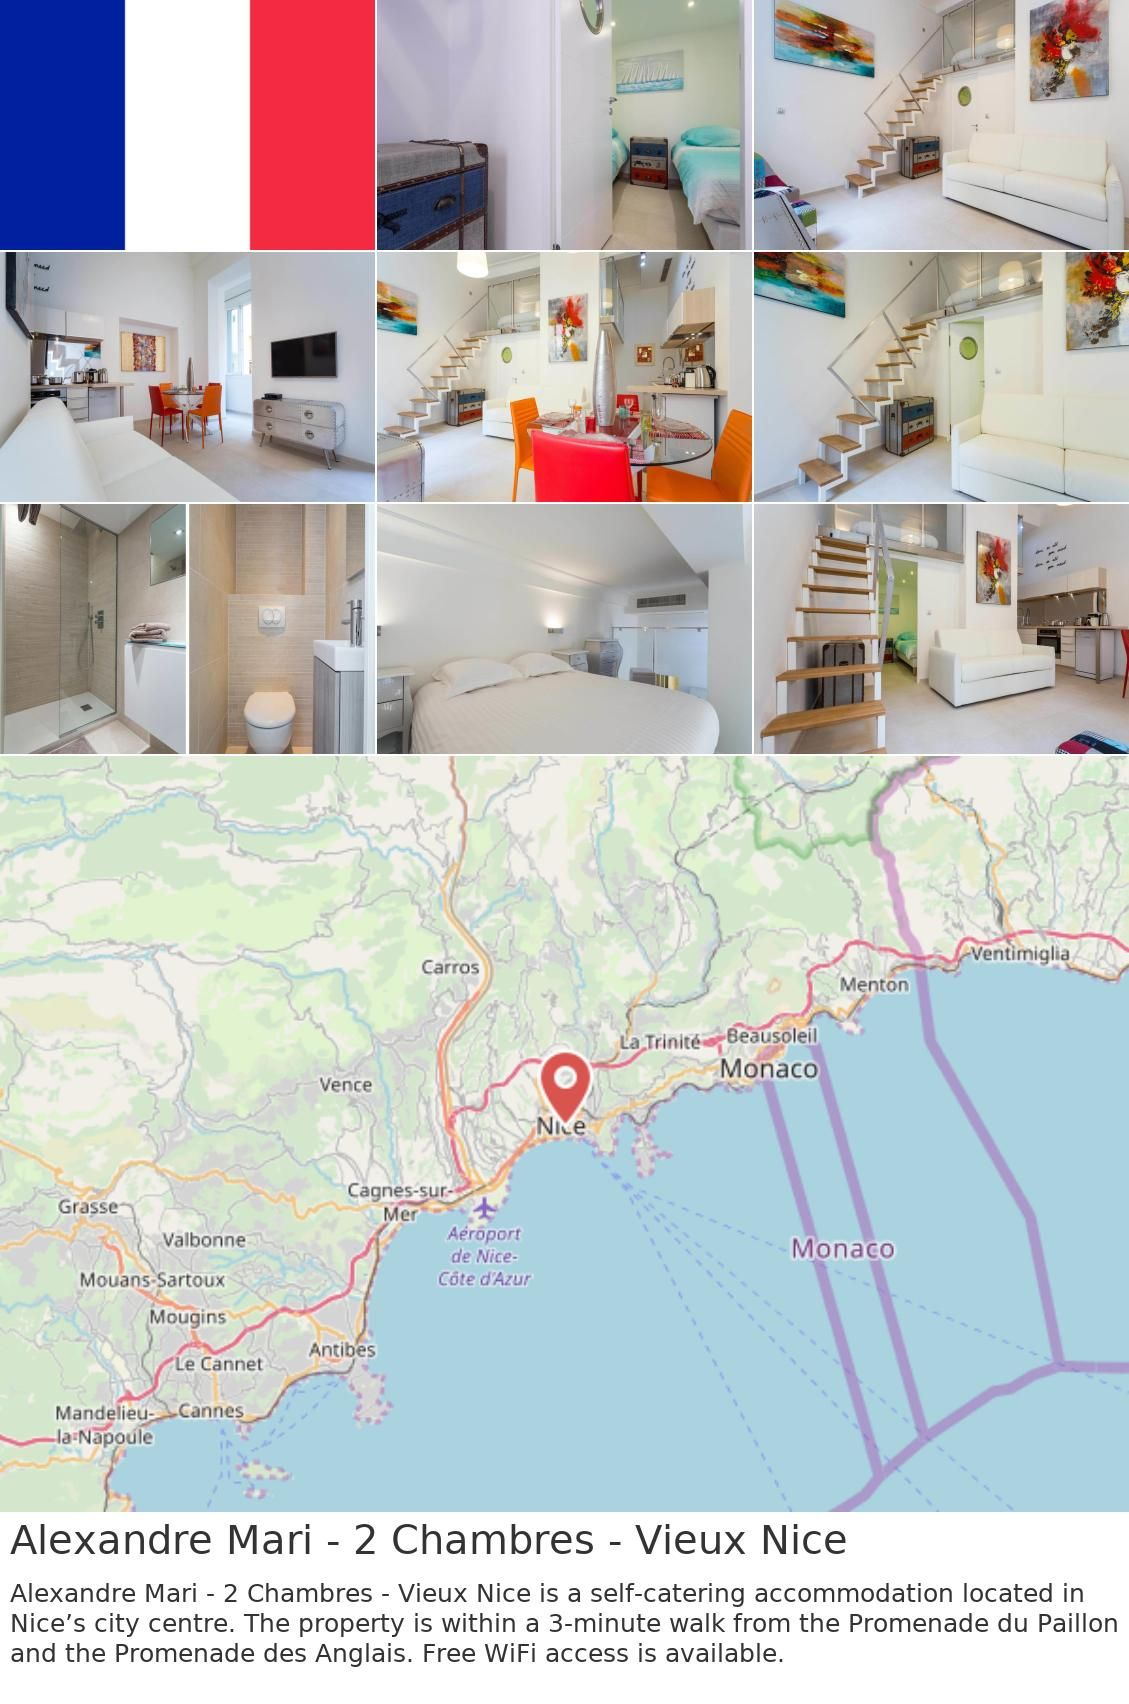 Location Chambre Nice Alexandre Mari 2 Chambres Vieux Nice In 2019 France France